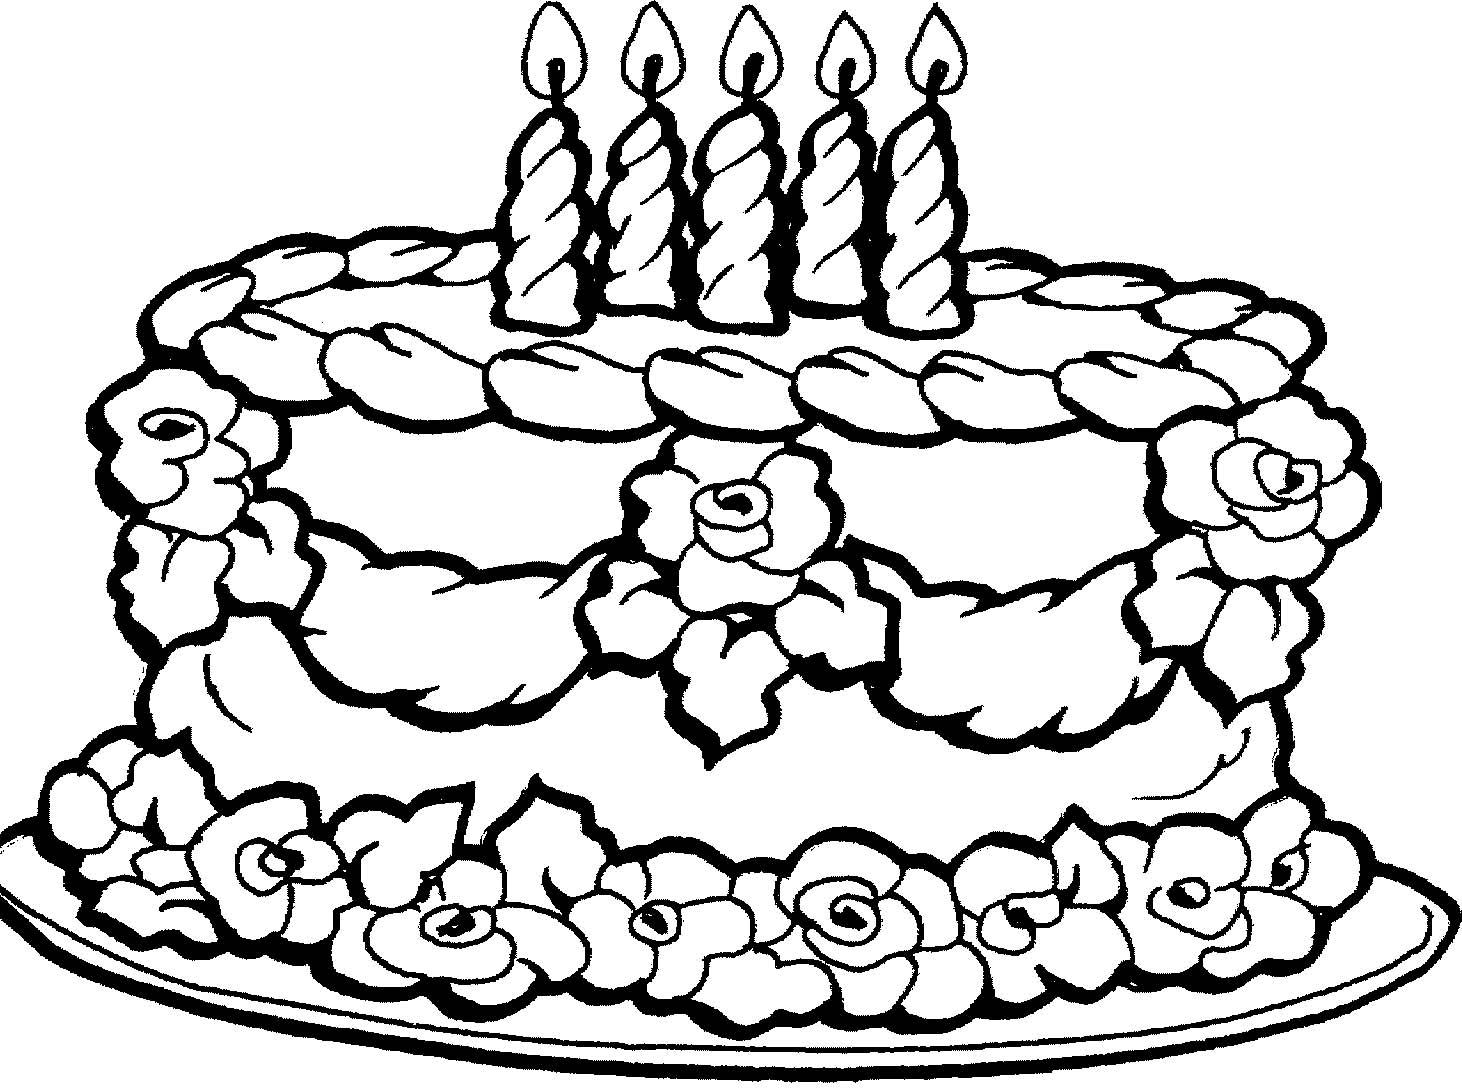 1462x1088 Cake Coloring Pages